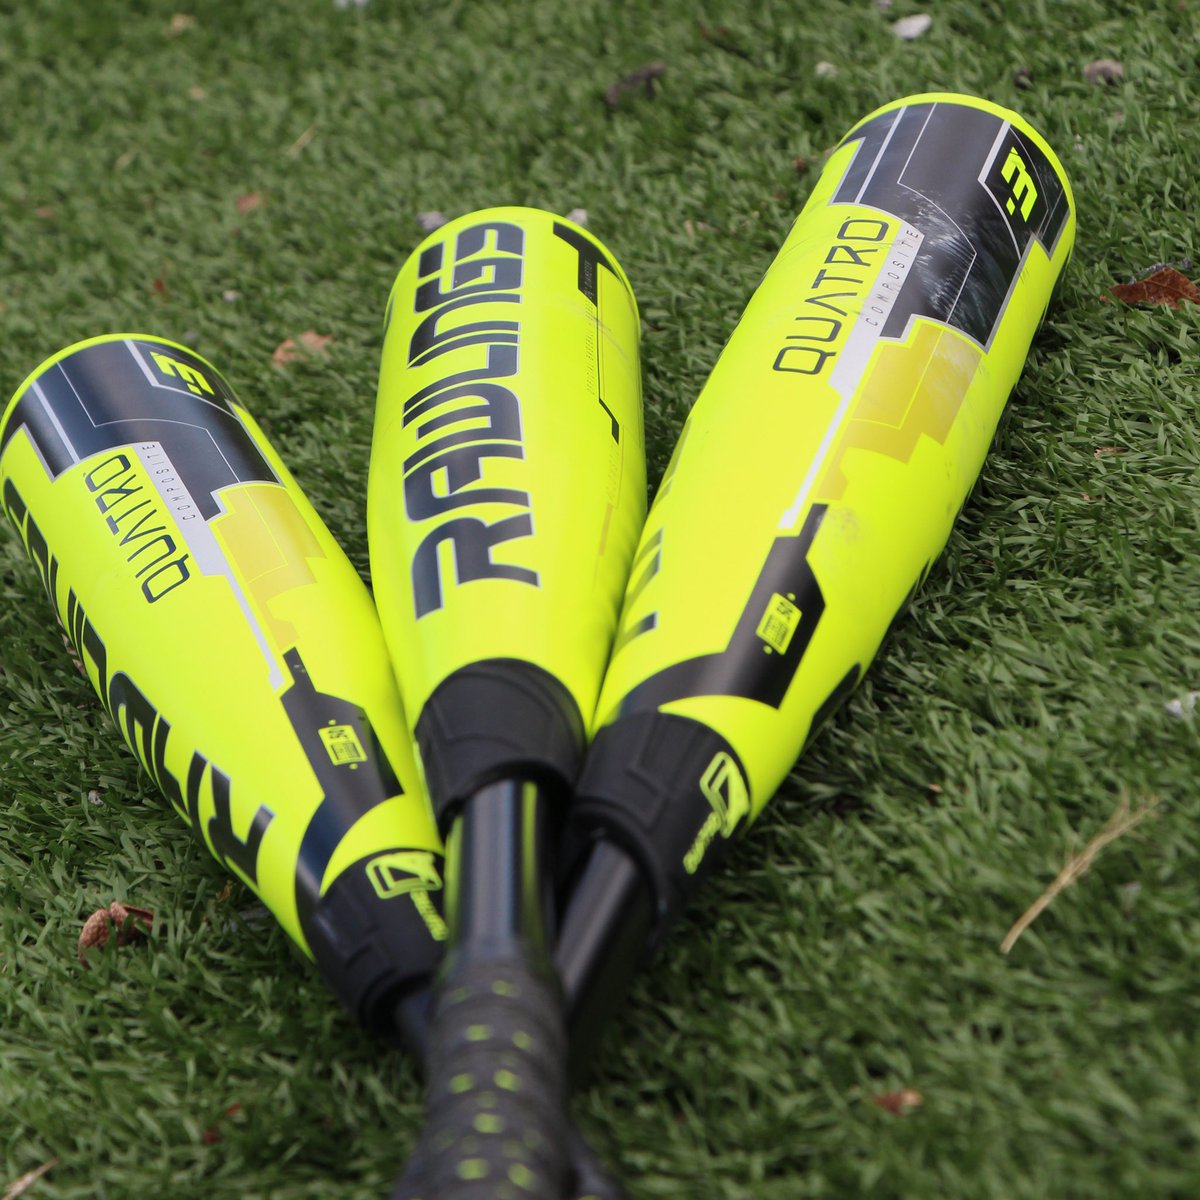 🚨 TODAY ONLY: save on this COB exclusive bat! #glowstick #rawlings #bbcor #flashsale